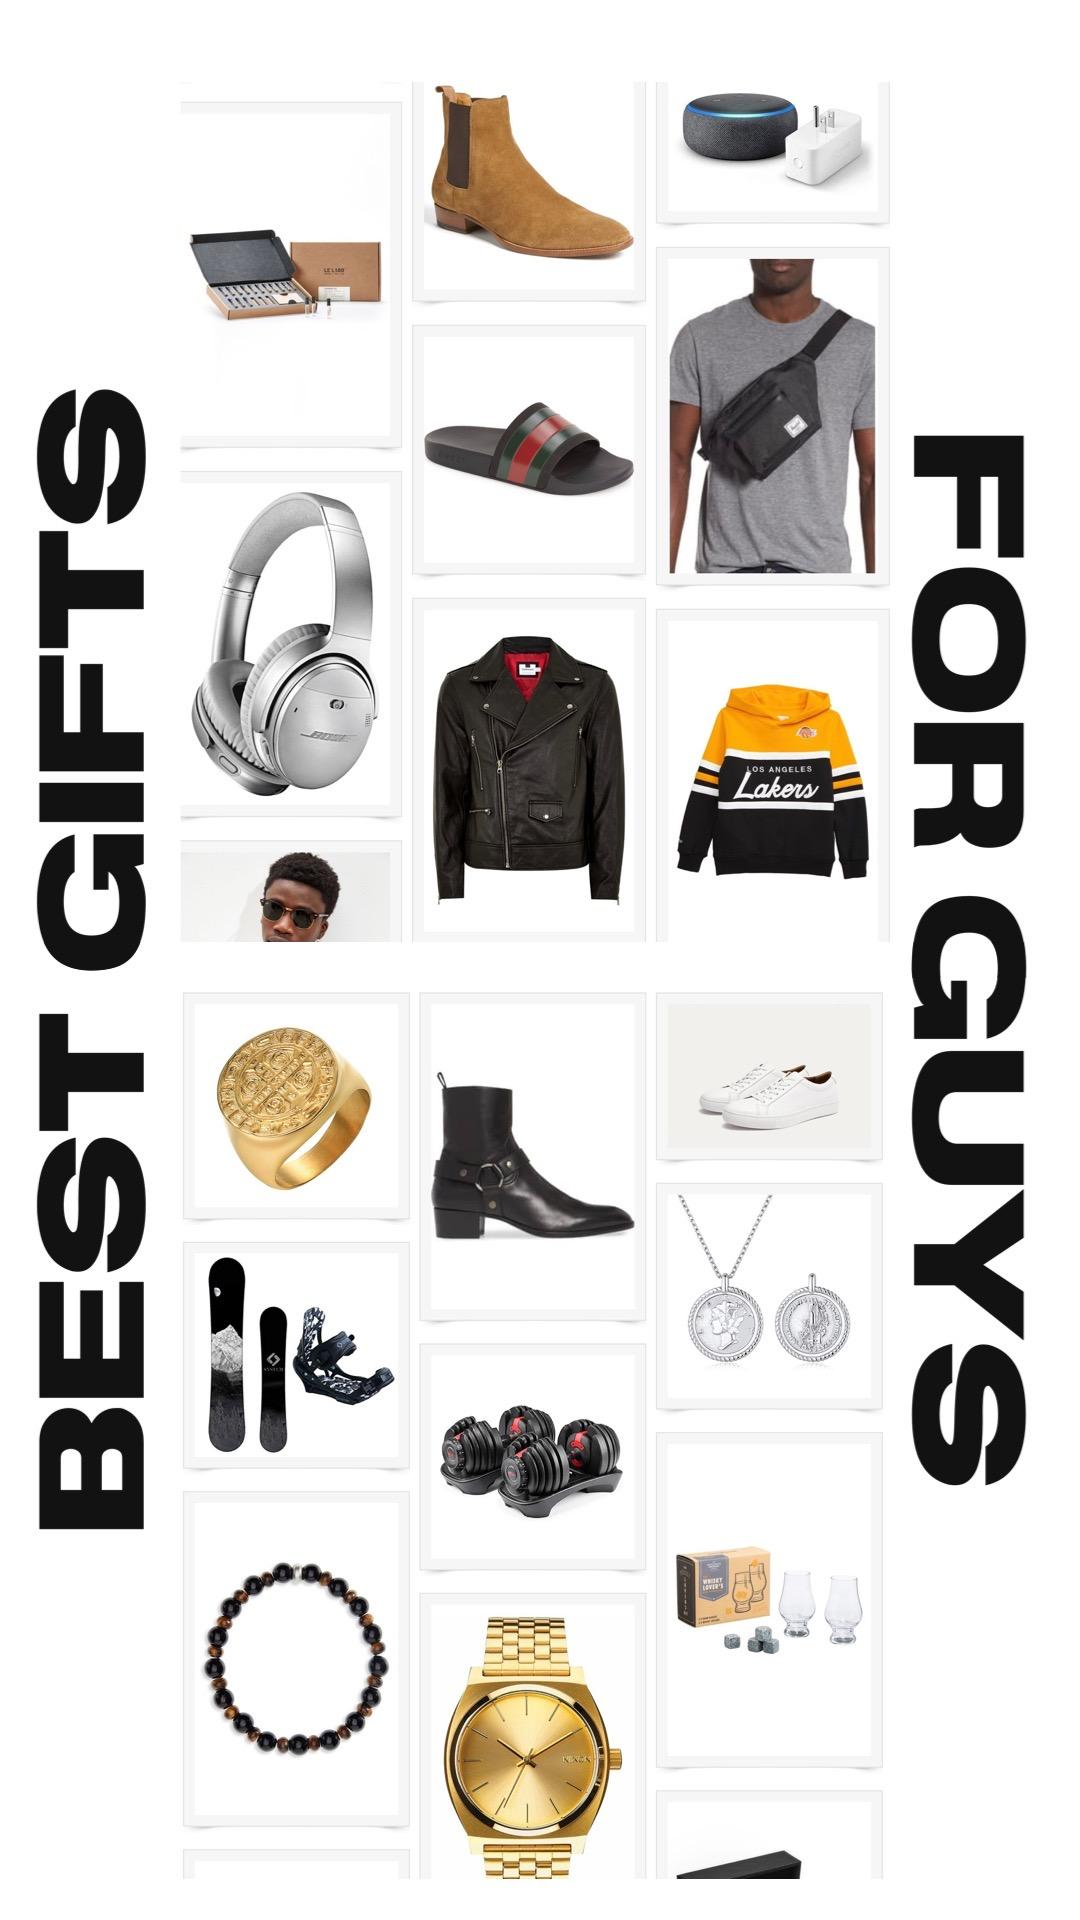 the best gifts for guys 2019